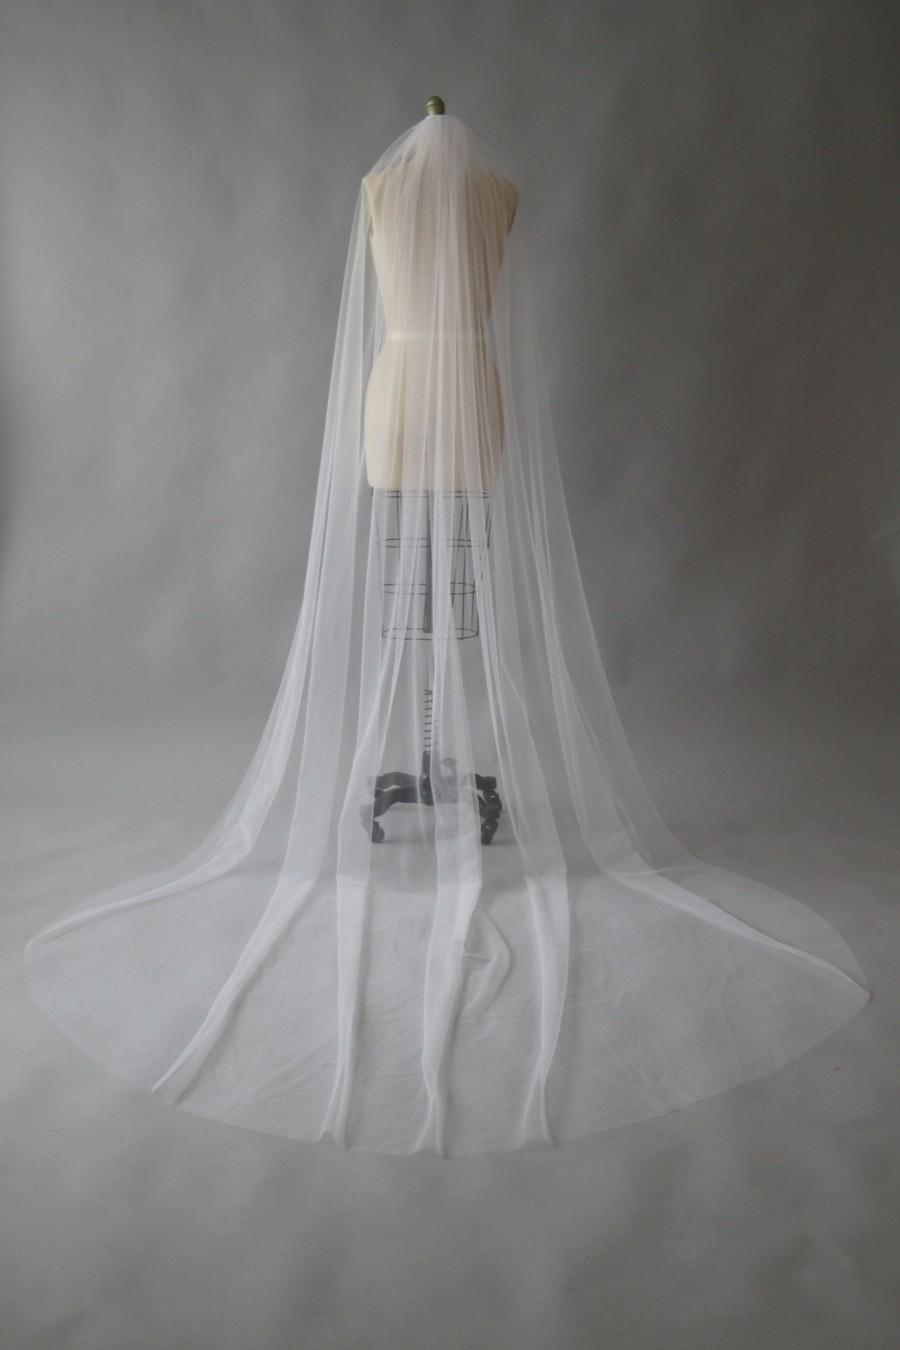 Mariage - CLAUDE, Sheer simple one tier veil, cathedral veil, white veil, custom veil, Made in Australia.